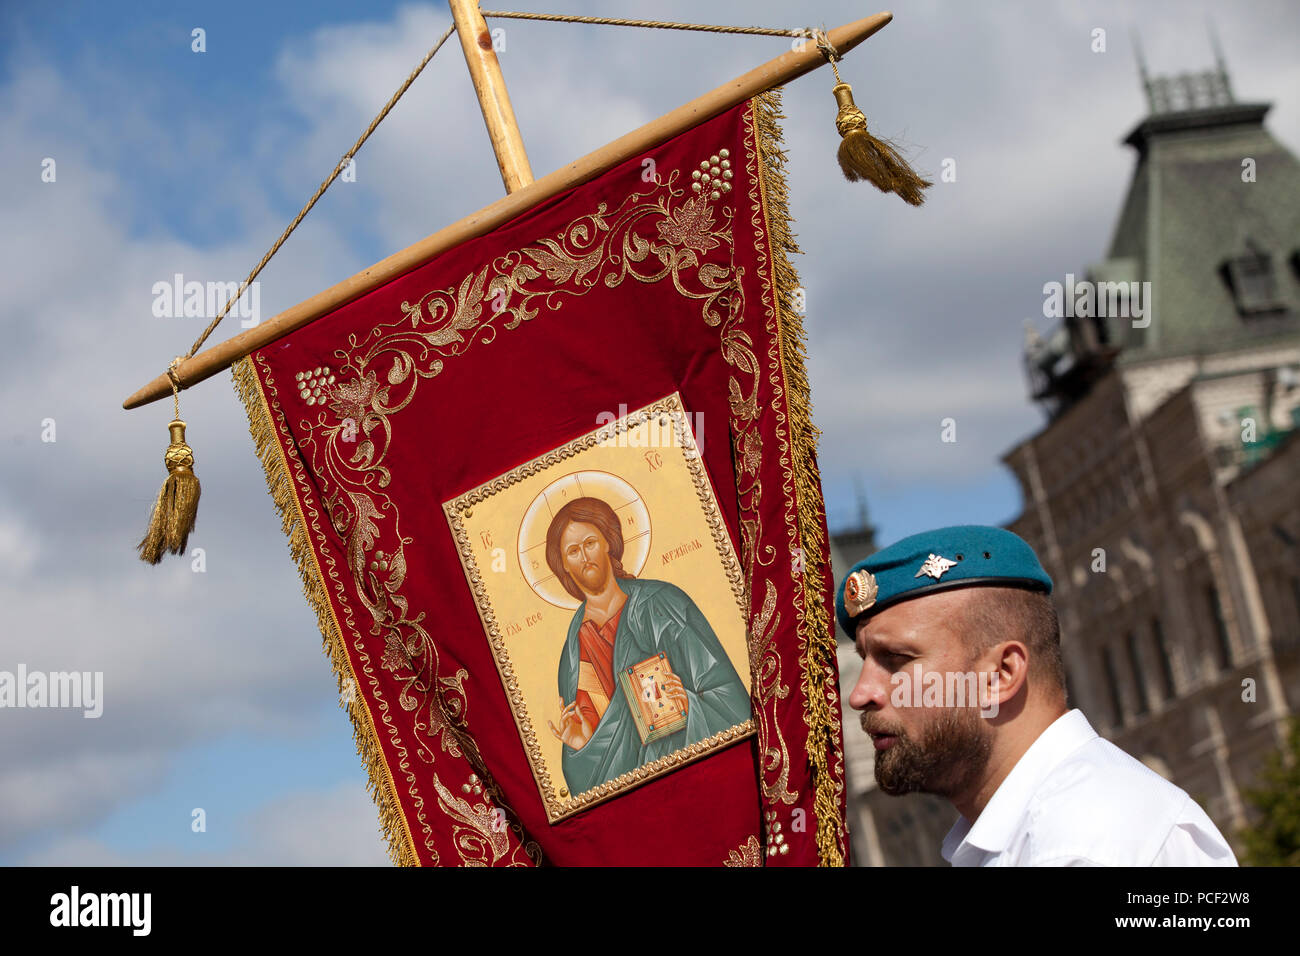 Joint procession of paratroopers and Orthodox priests on the day of St. Elijah the Prophet and the Airborne Forces in central Moscow, Russia - Stock Image